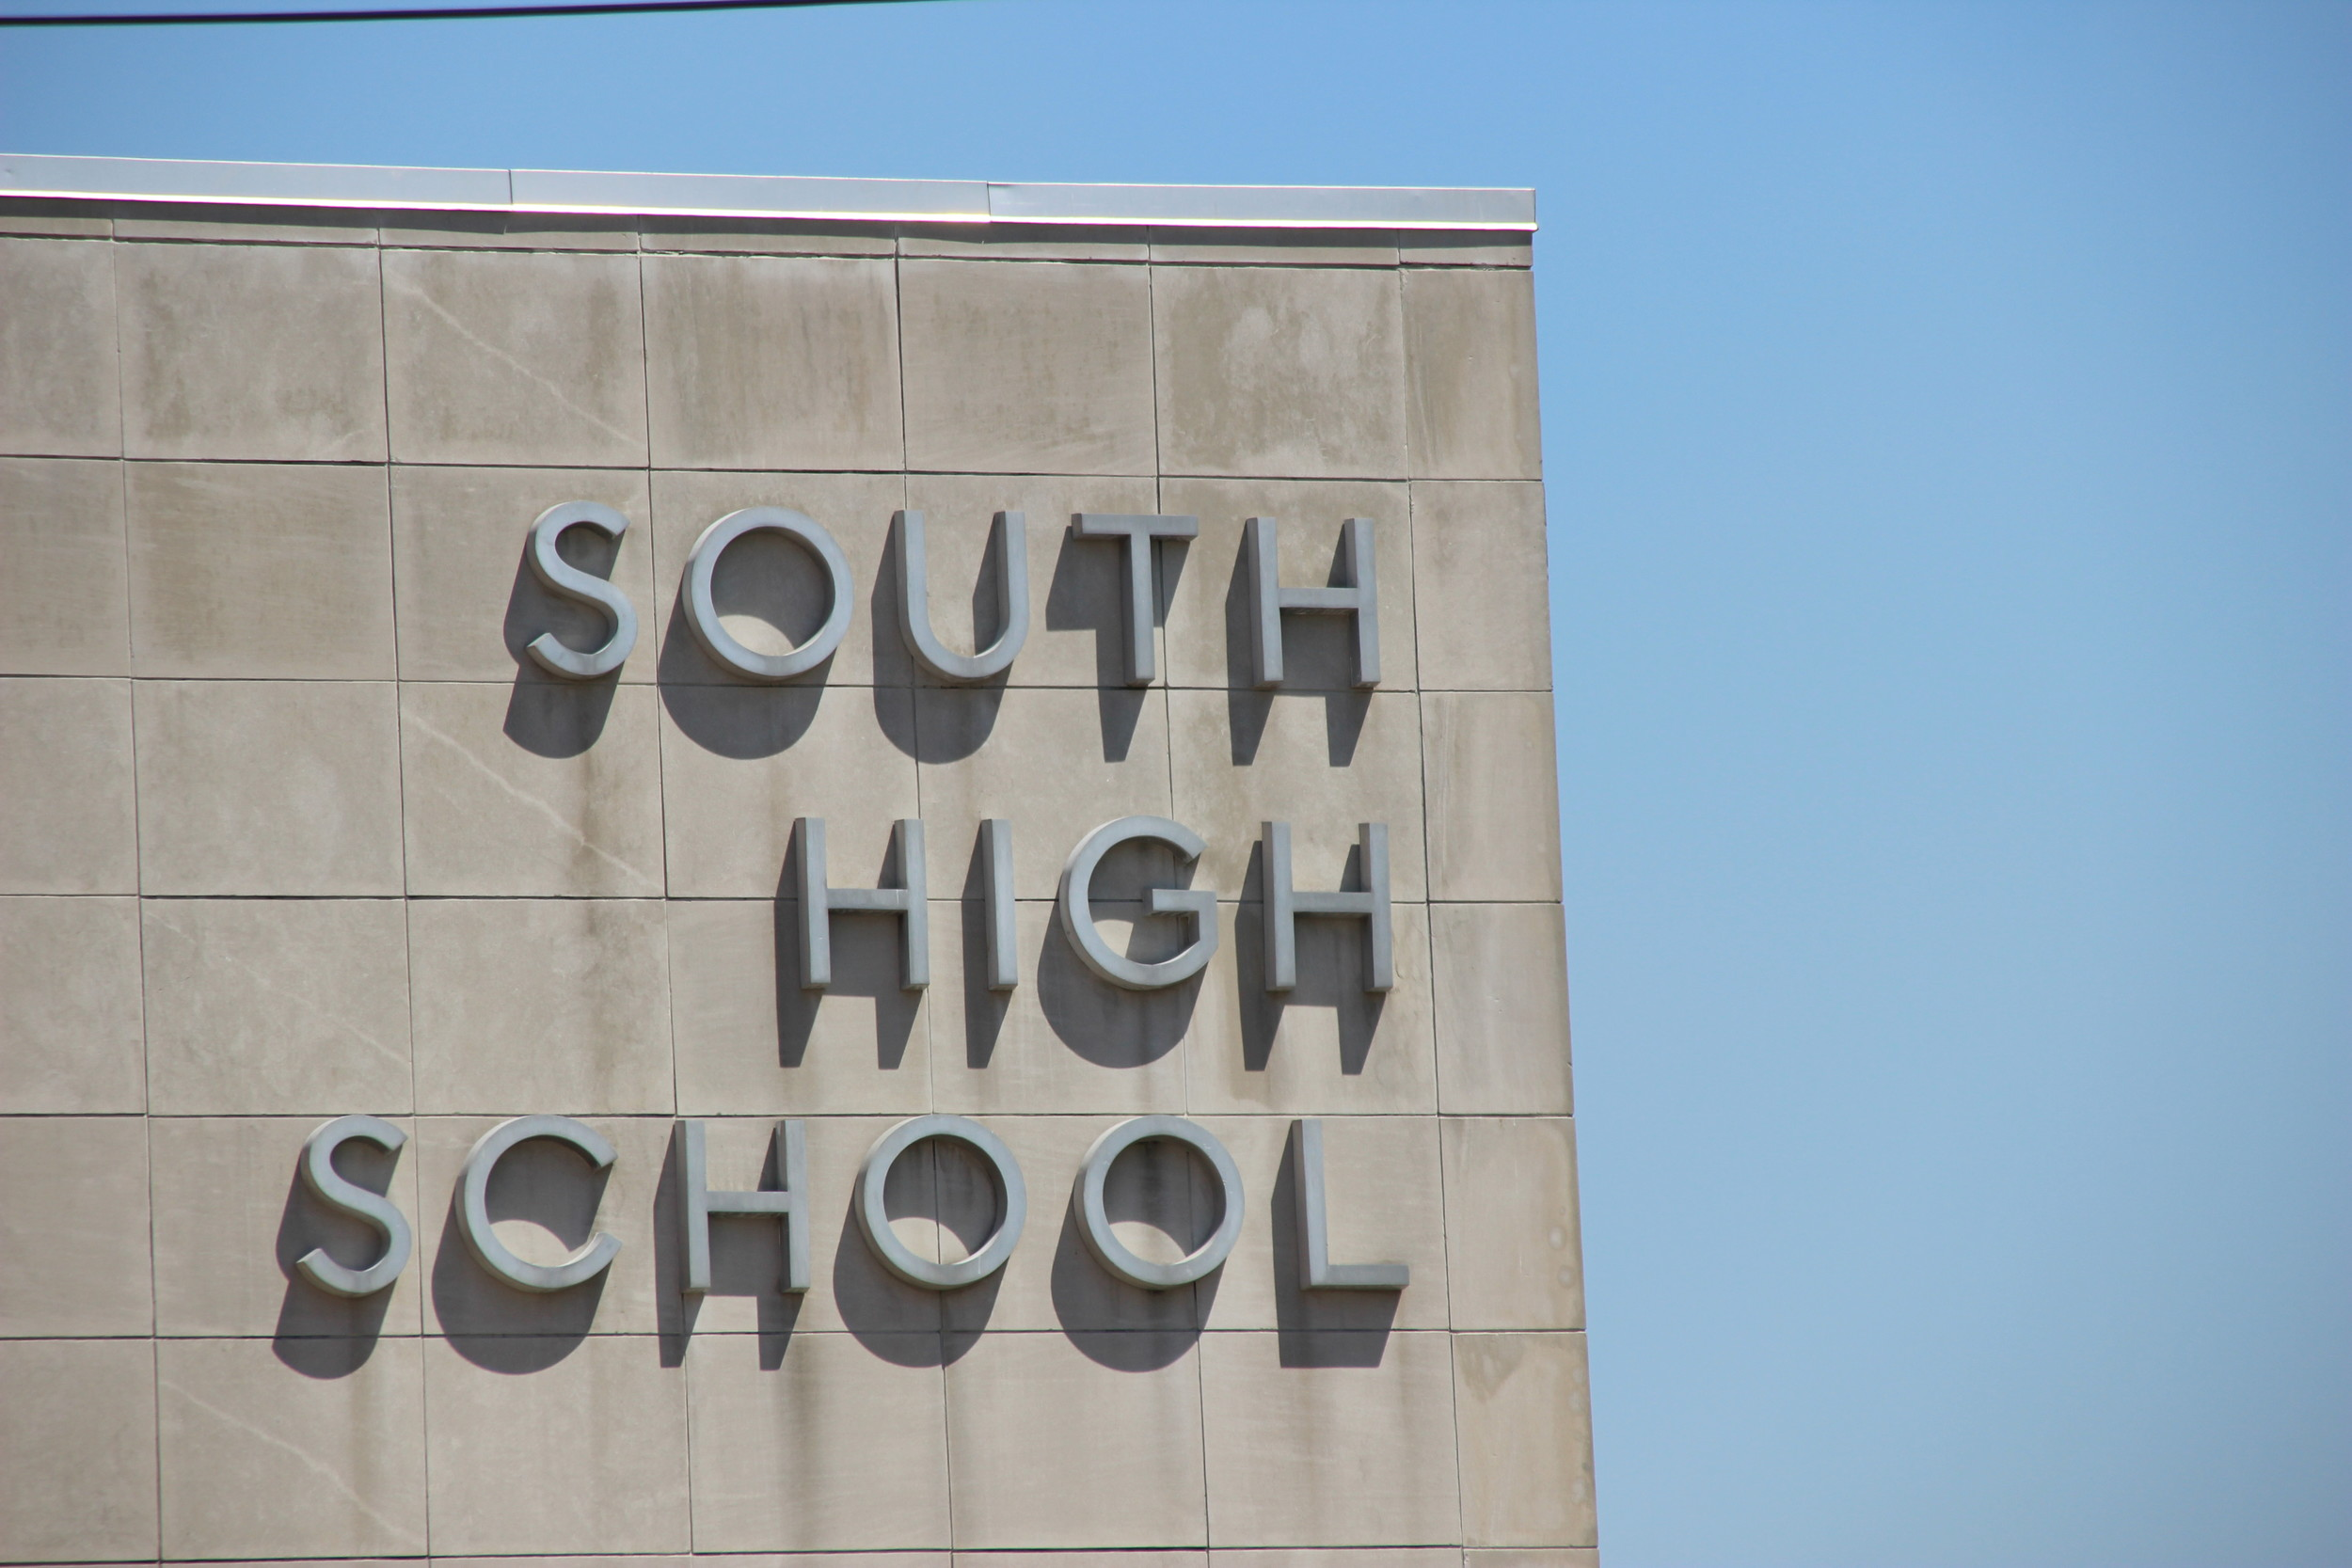 Students at South High School petitioned Principal Maureen Henry and Superintendent Bill Heidenreich to reinstate a project that was stopped.